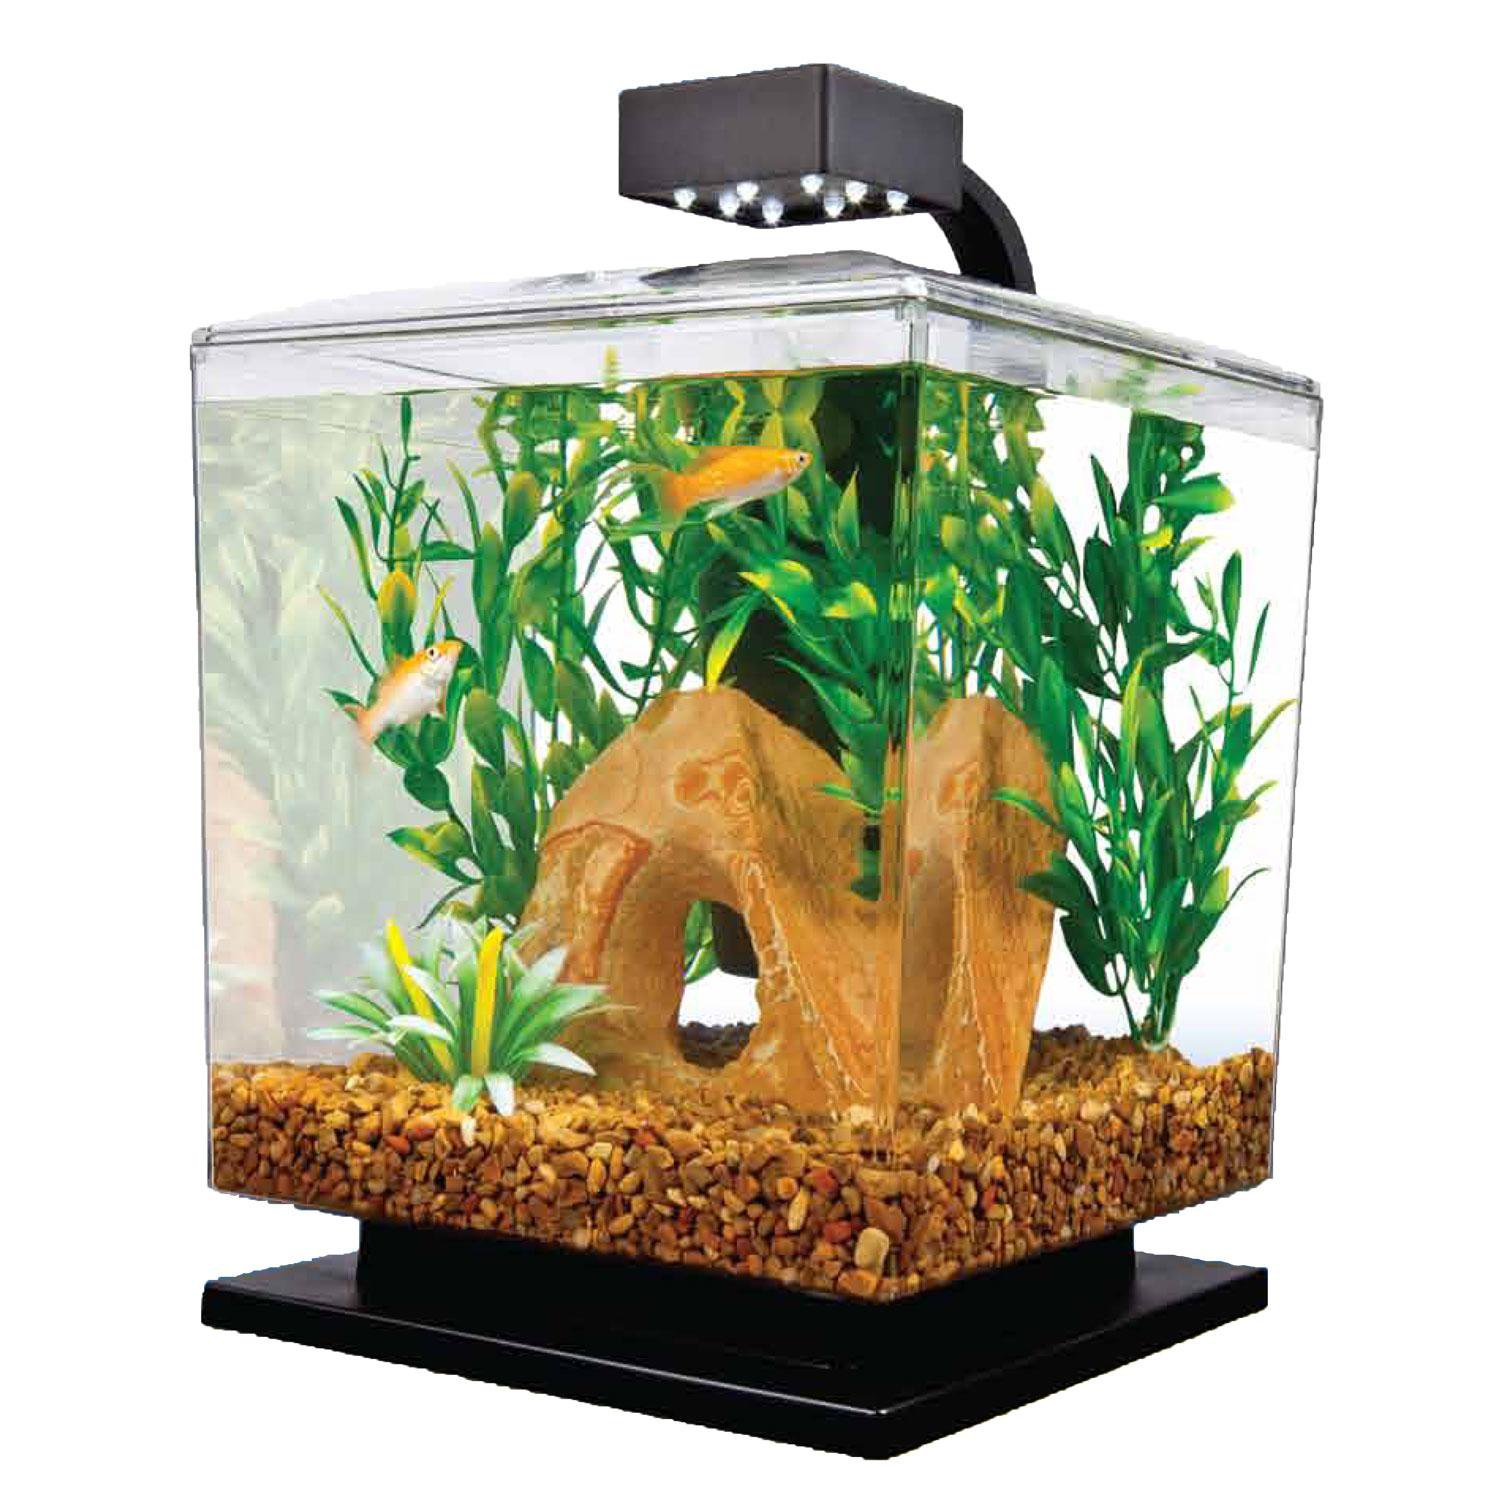 All glass aquarium fish tank - Tetra 1 5 Gallon Led Desktop Aquarium Kit